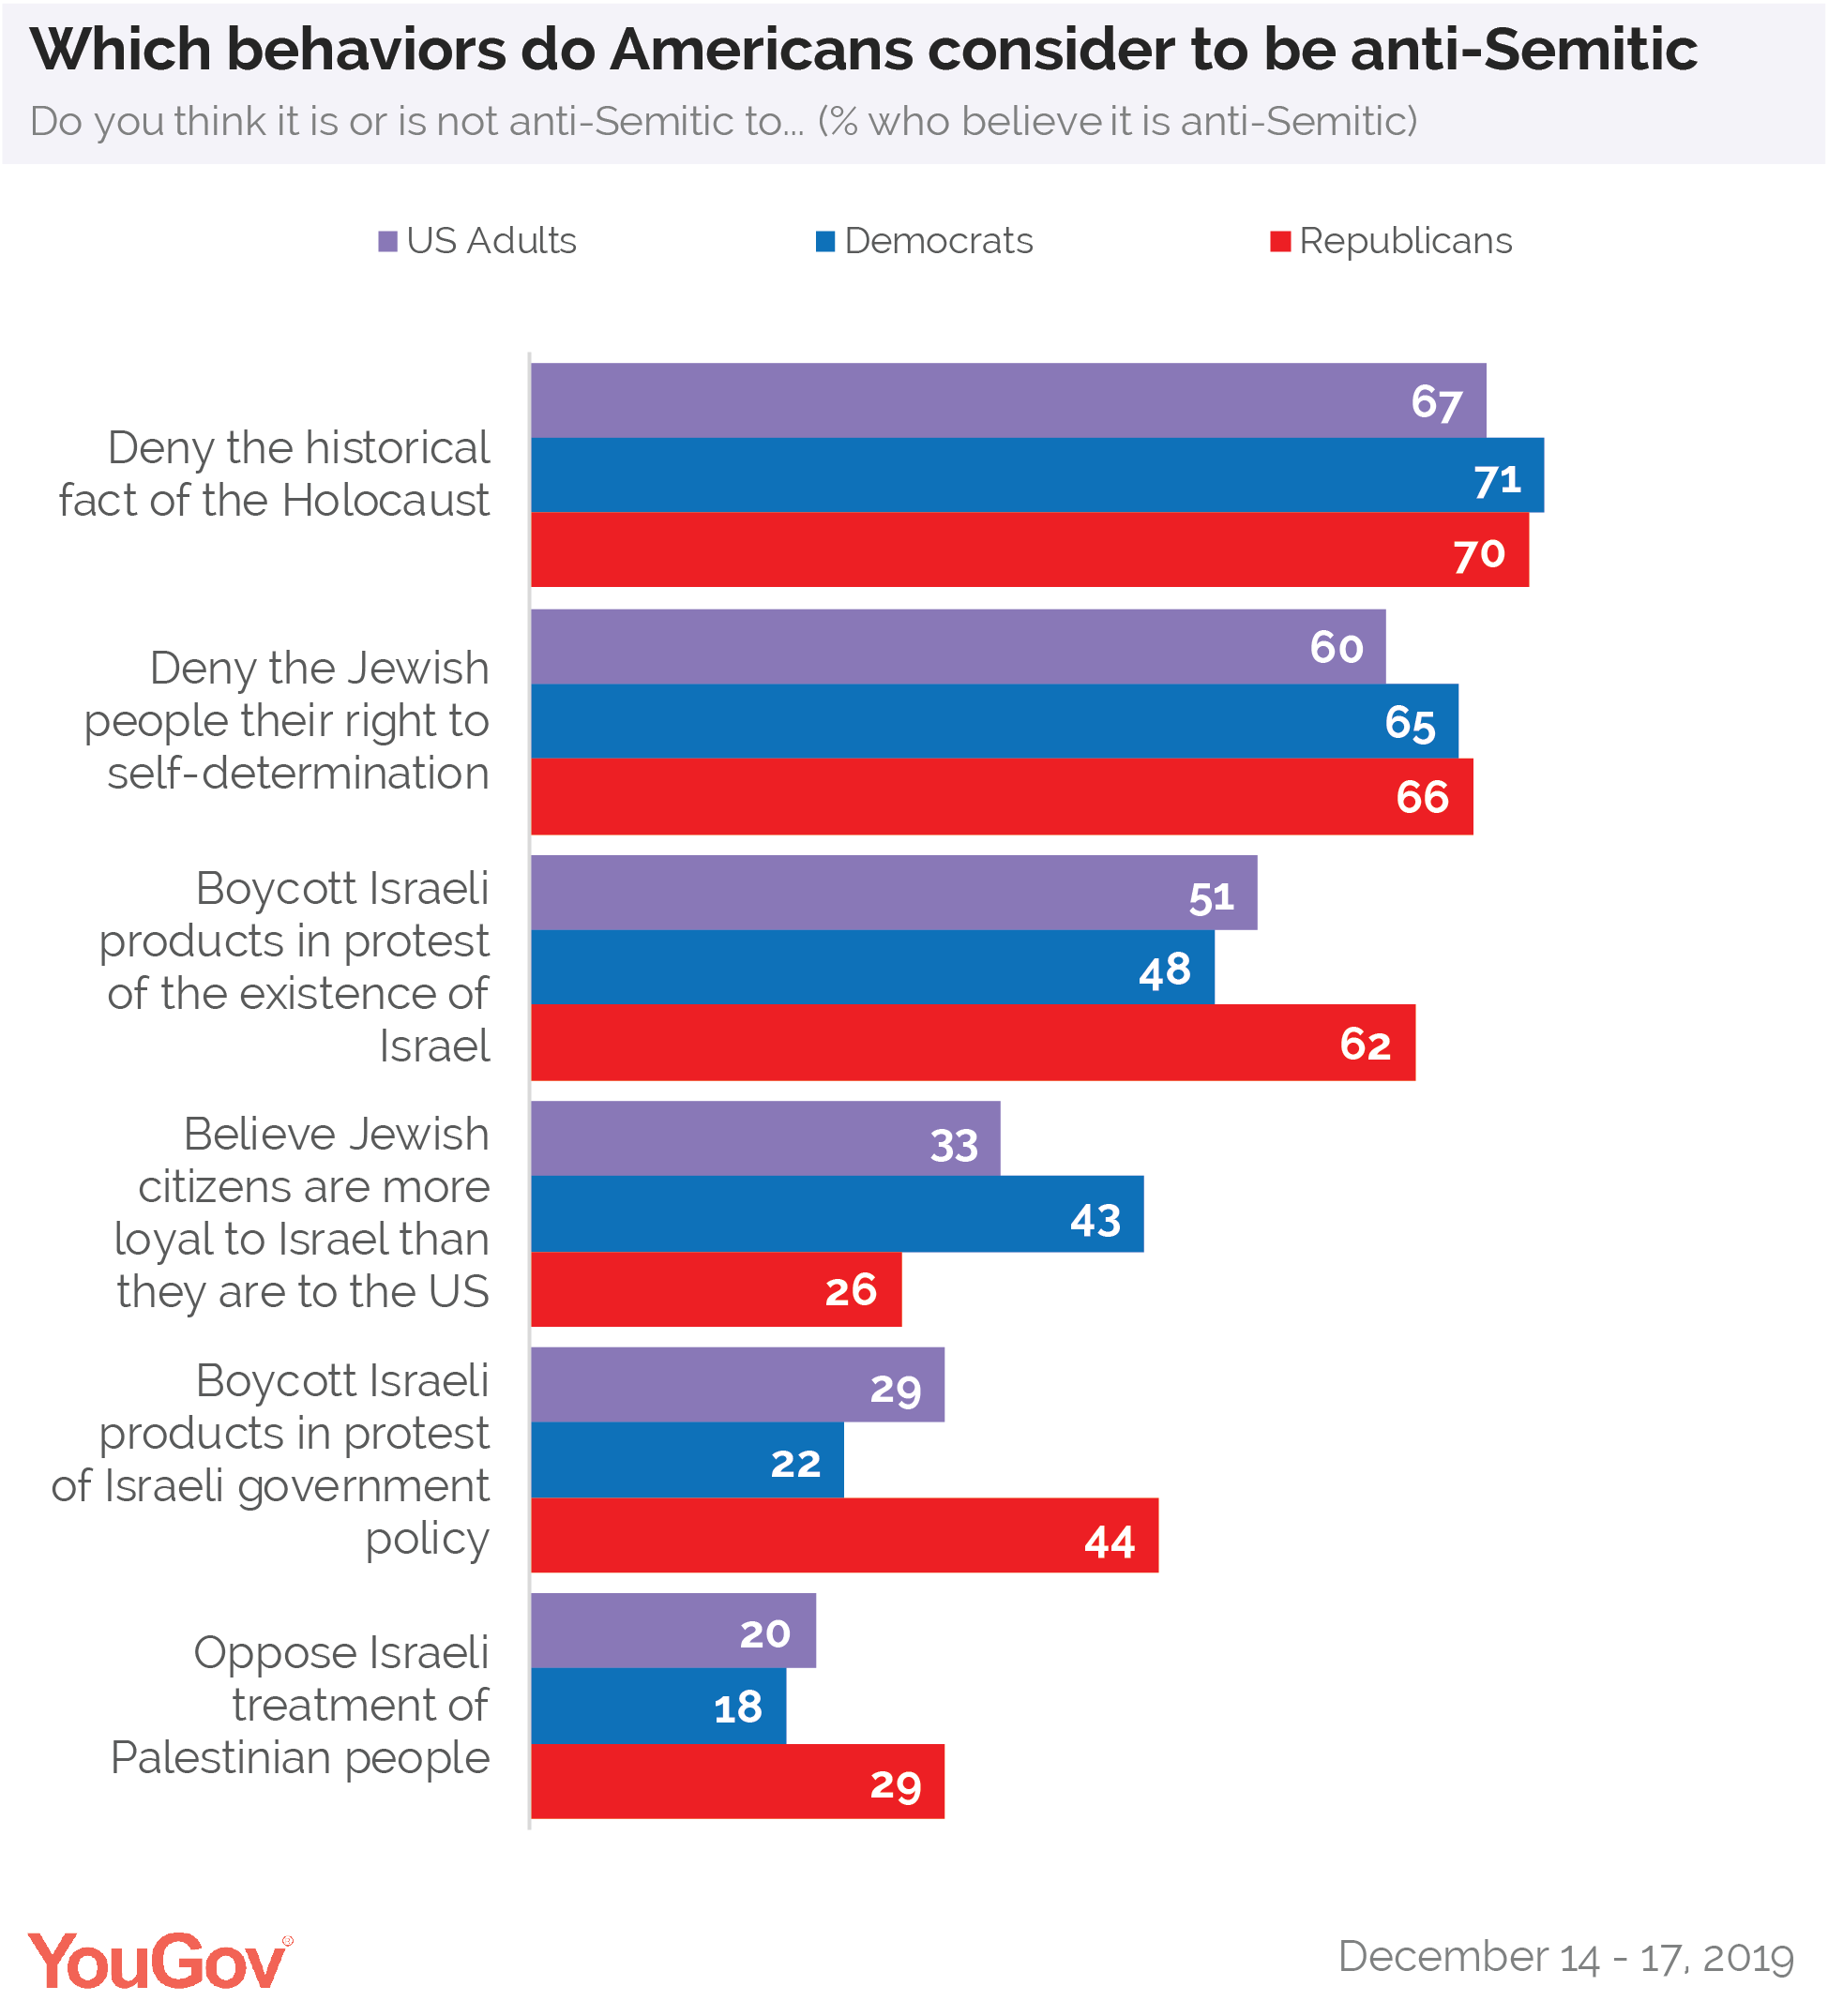 What behaviors do Americans consider to be anti-Semitic?